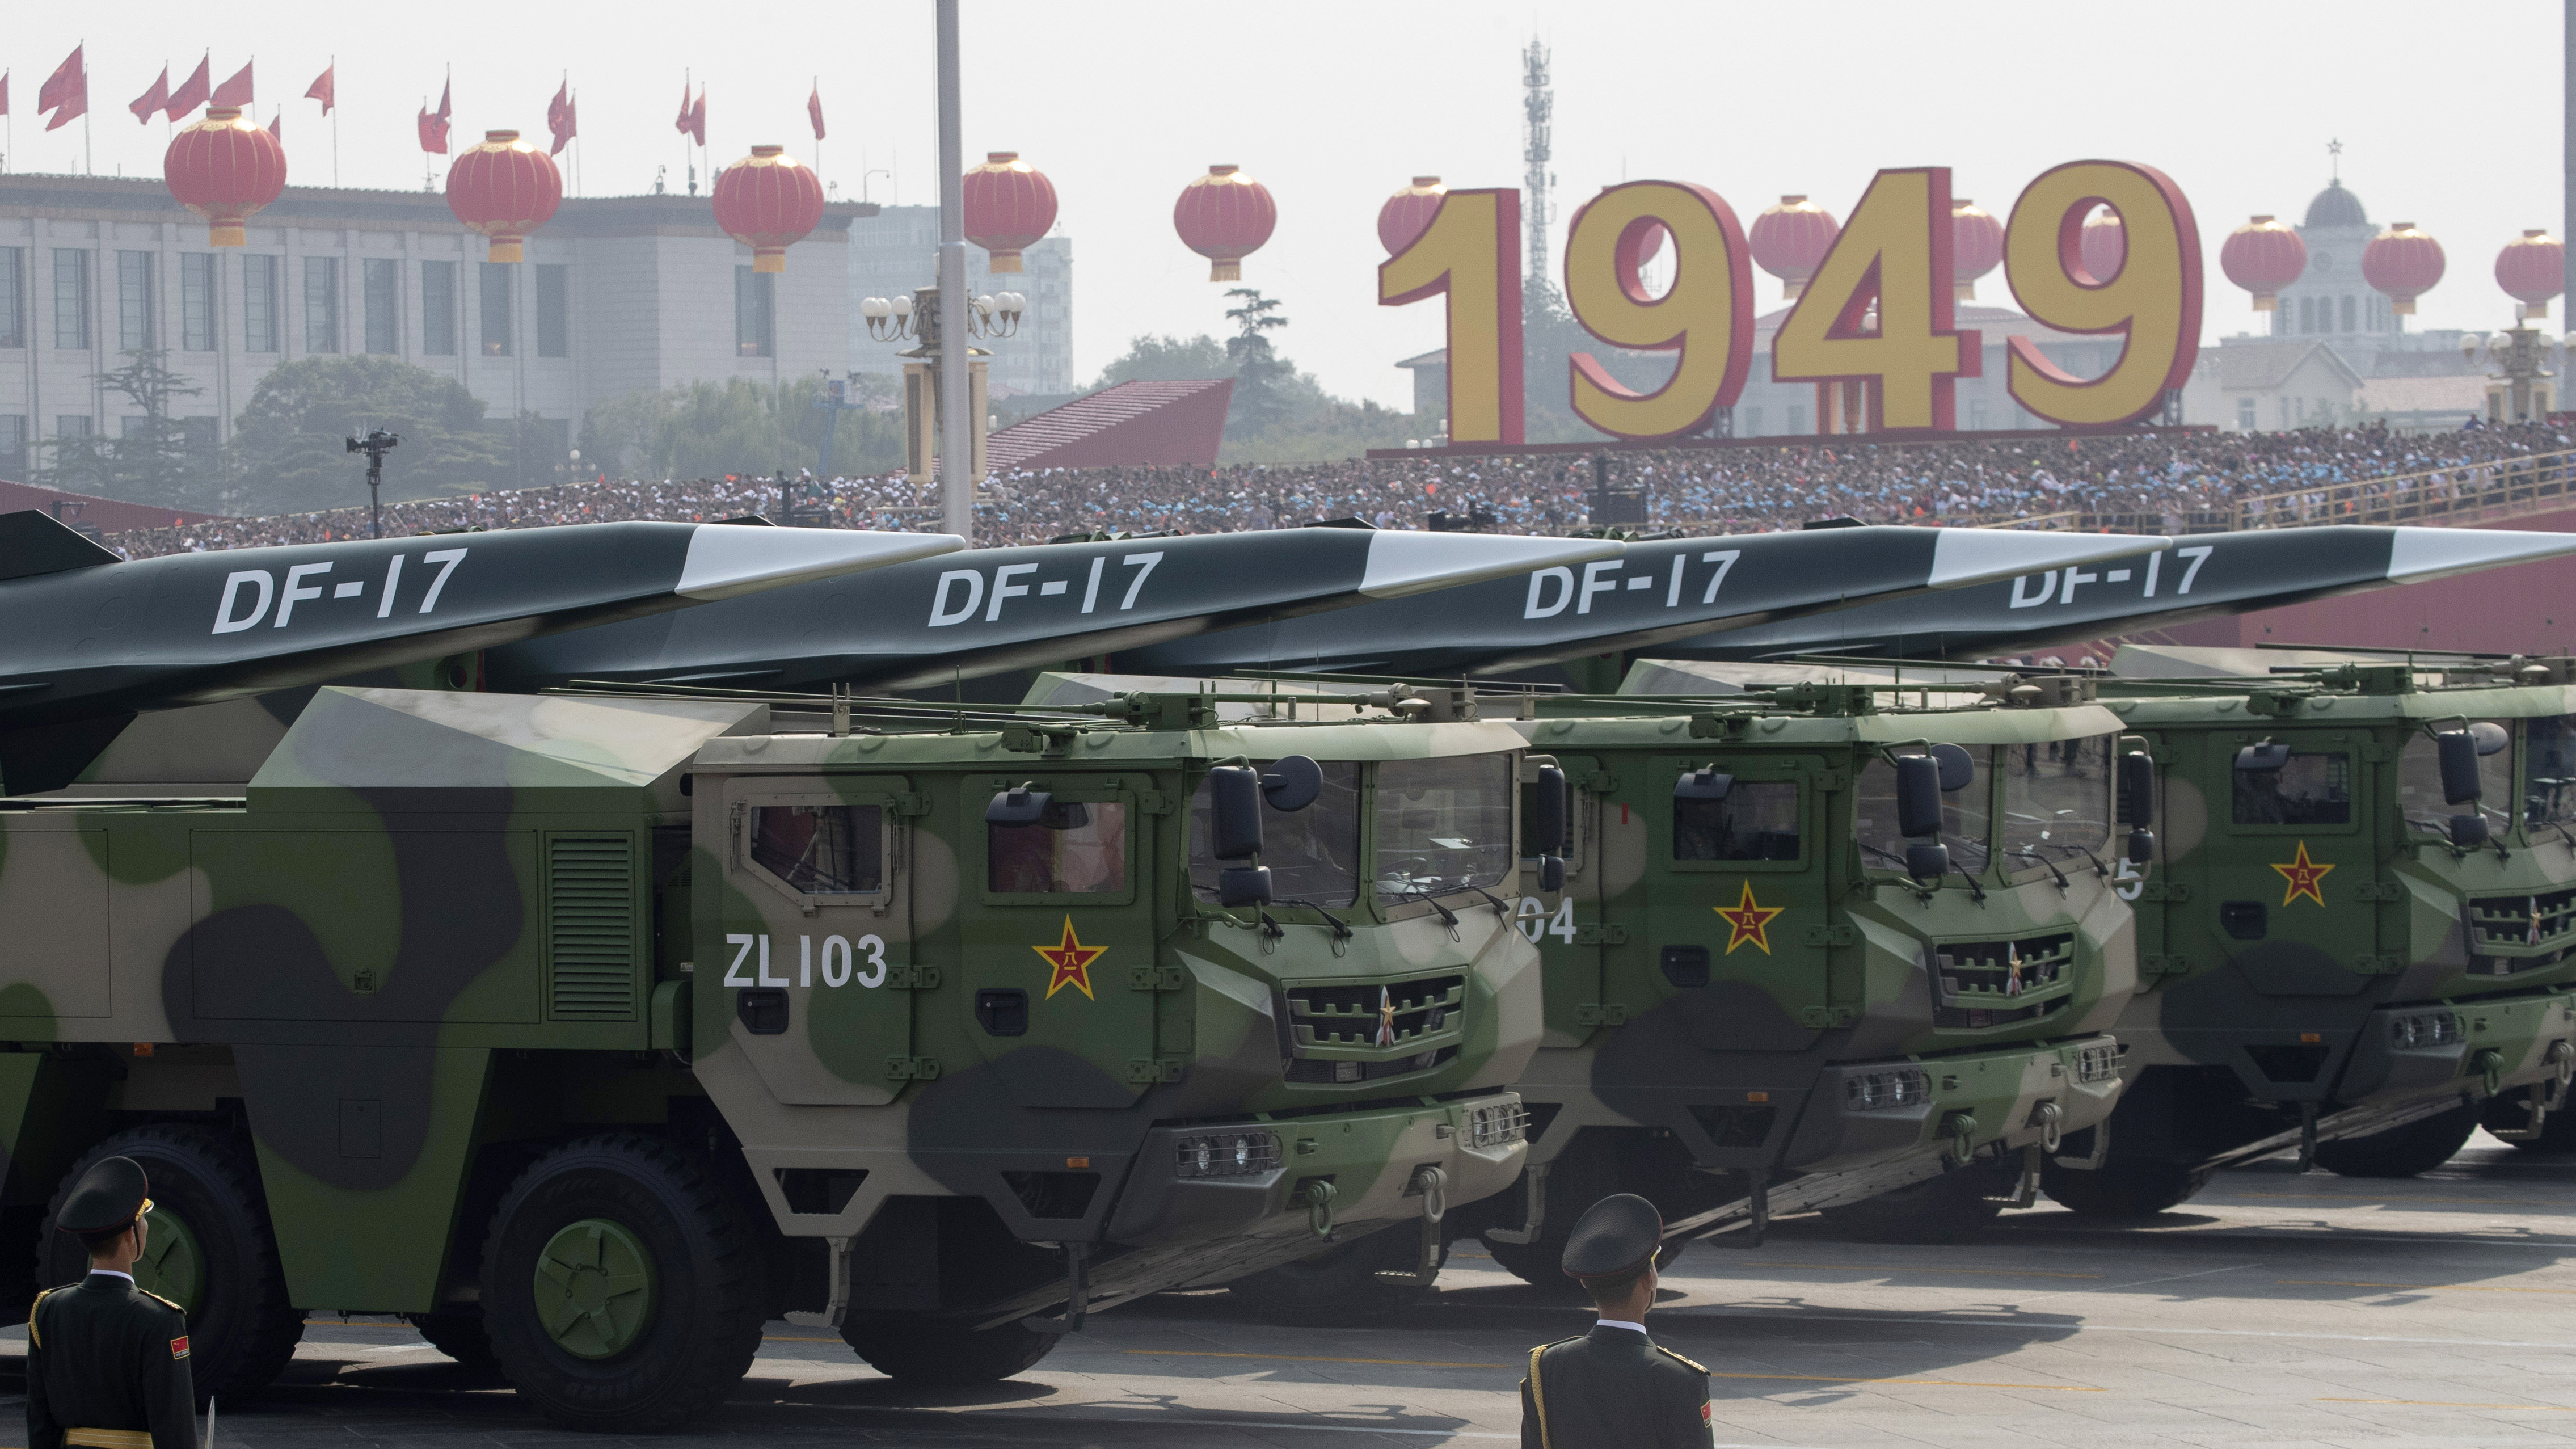 Chinese military vehicles carrying DF-17 roll during a parade to commemorate the 70th anniversary of the founding of Communist China in Beijing, Tuesday, Oct. 1, 2019. Military planners in Washington and elsewhere will be taking note of new missile technology displayed by China, particularly the hypersonic Dong Feng 17 or DF17 ballistic nuclear missile believed capable of breaching all existing anti-missile shields deployed by the U.S. and its allies. (AP Photo/Ng Han Guan)